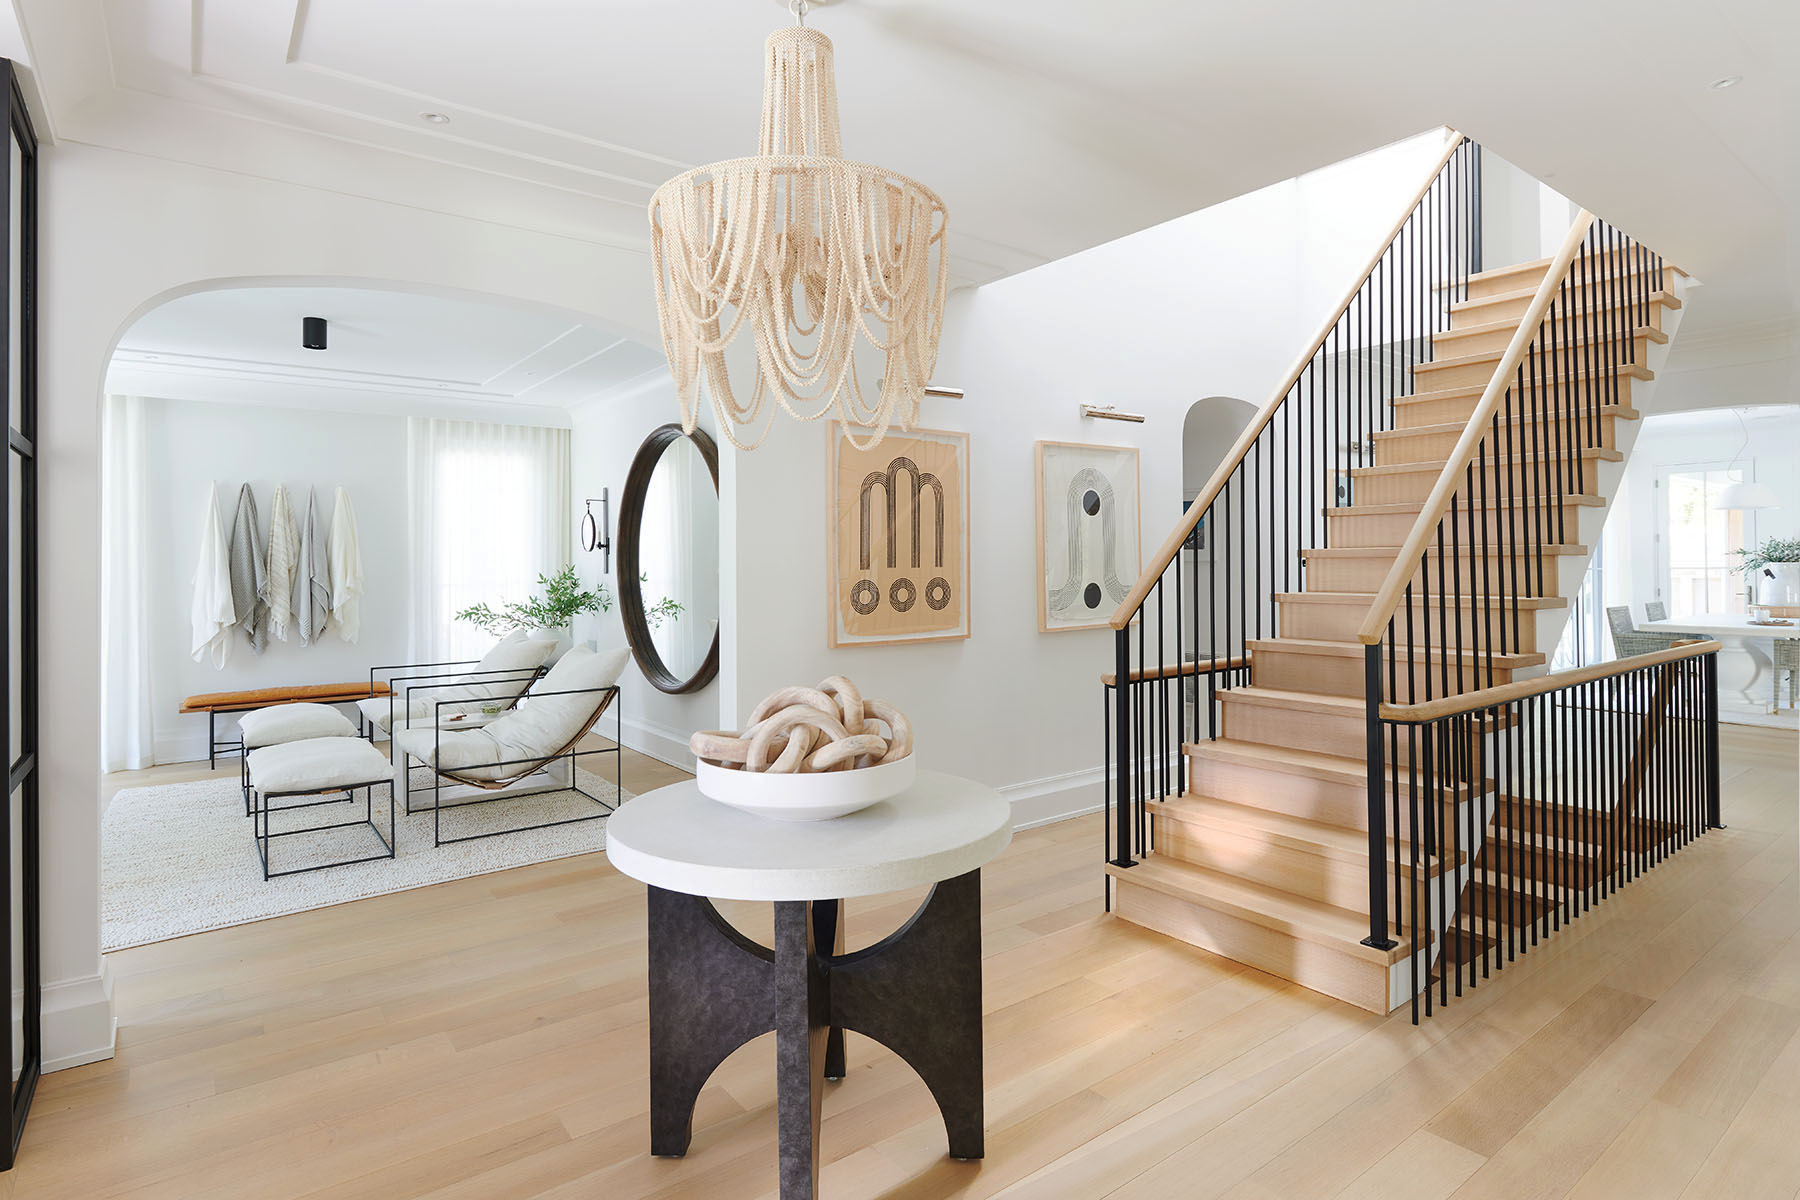 Here's the normal, balanced rendering of this striking foyer also by Ellie Mroz Design. The brighter rooms left and right really don't need to be any brighter. Unless …